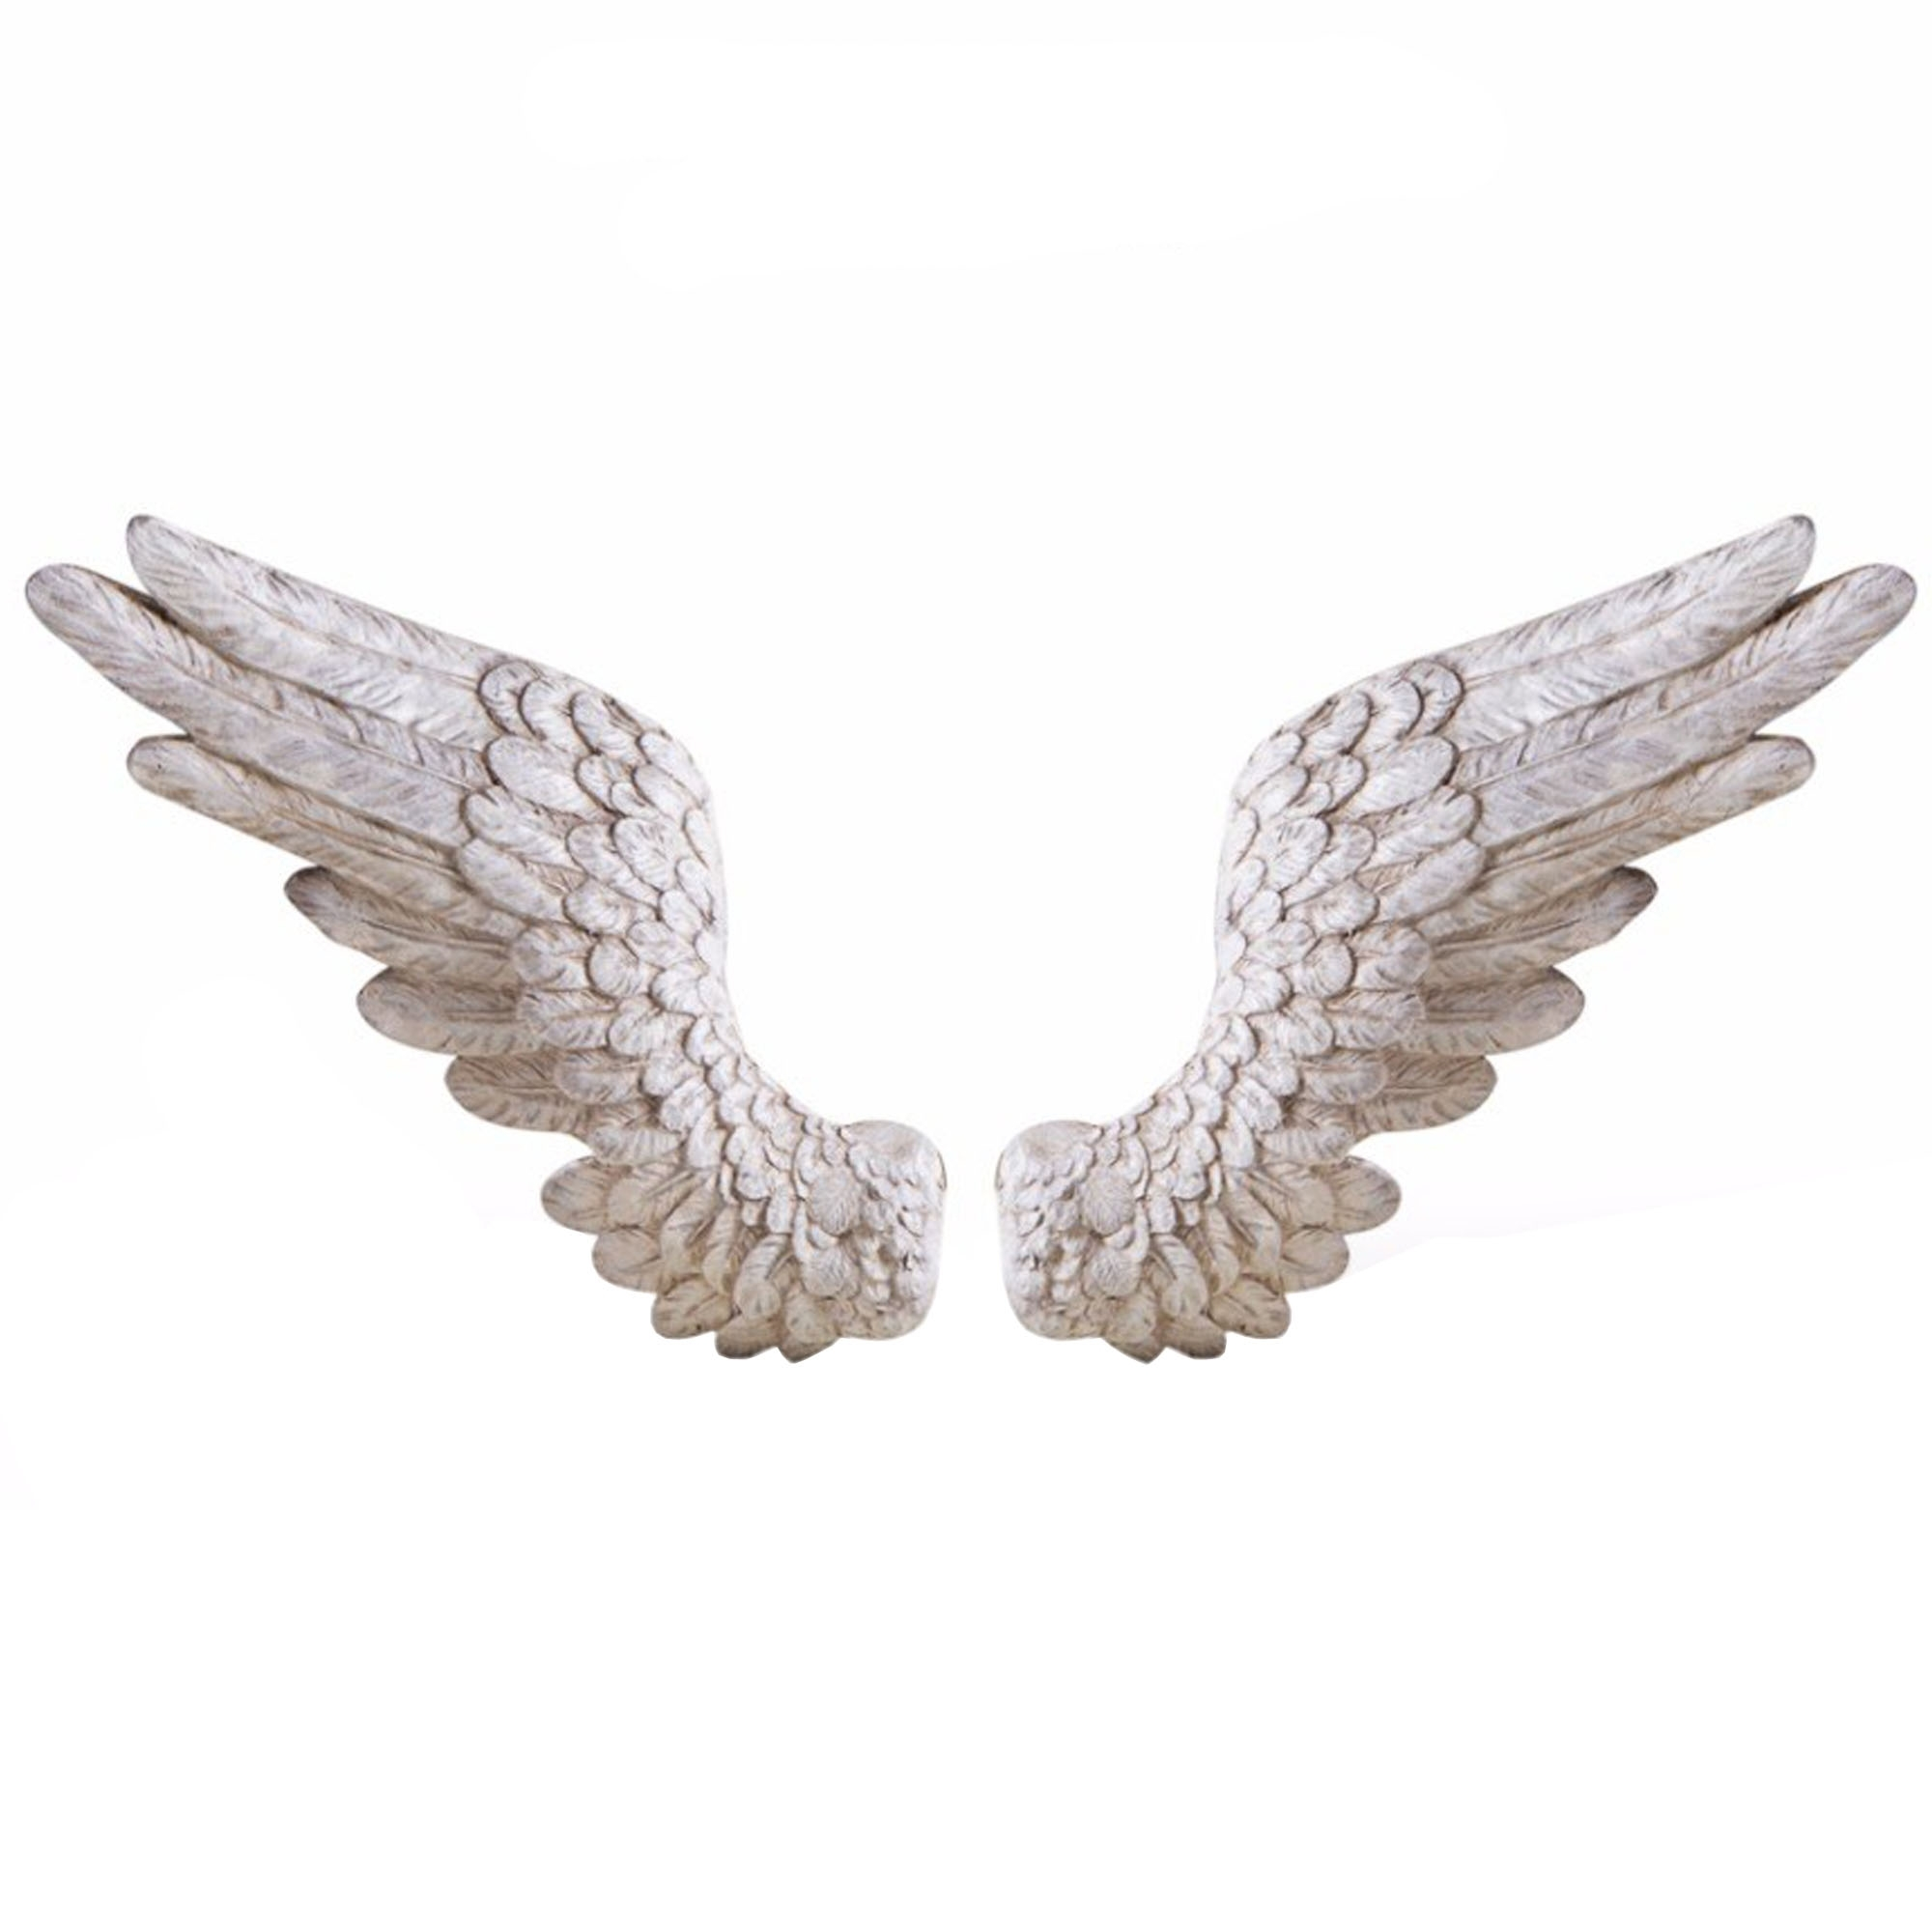 Pair of antique white angel wings wall decor decor for Angel wings wall decoration uk